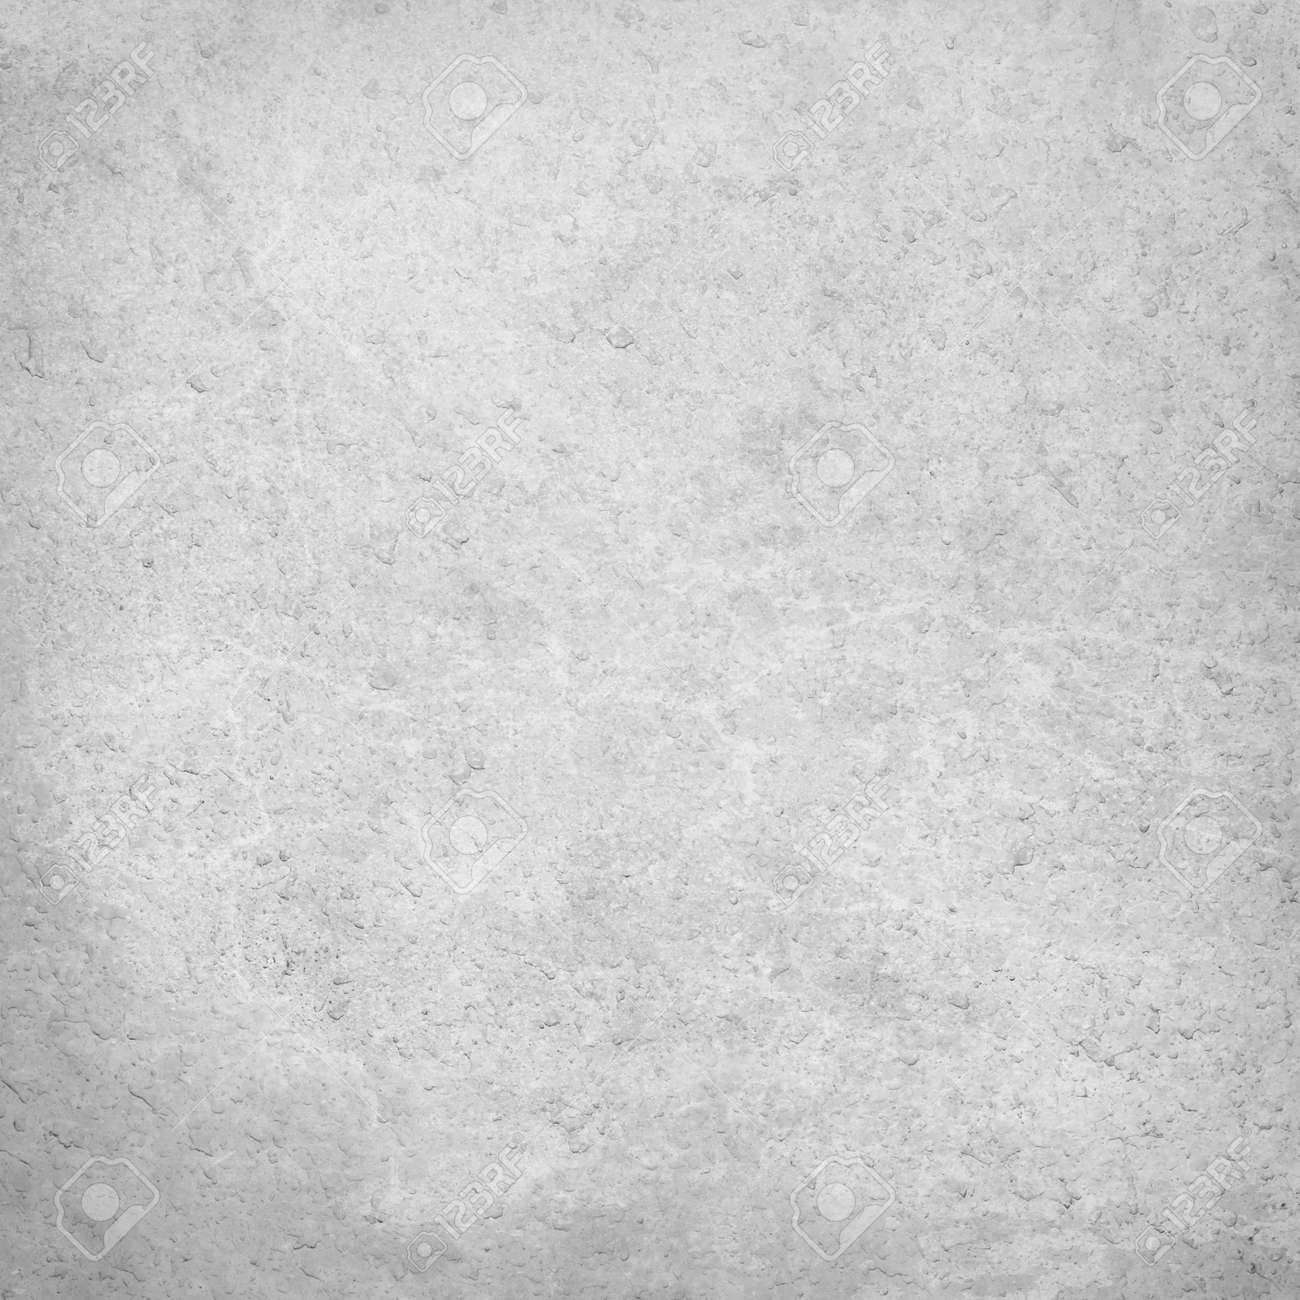 white wall texture background Stock Photo - 15254677